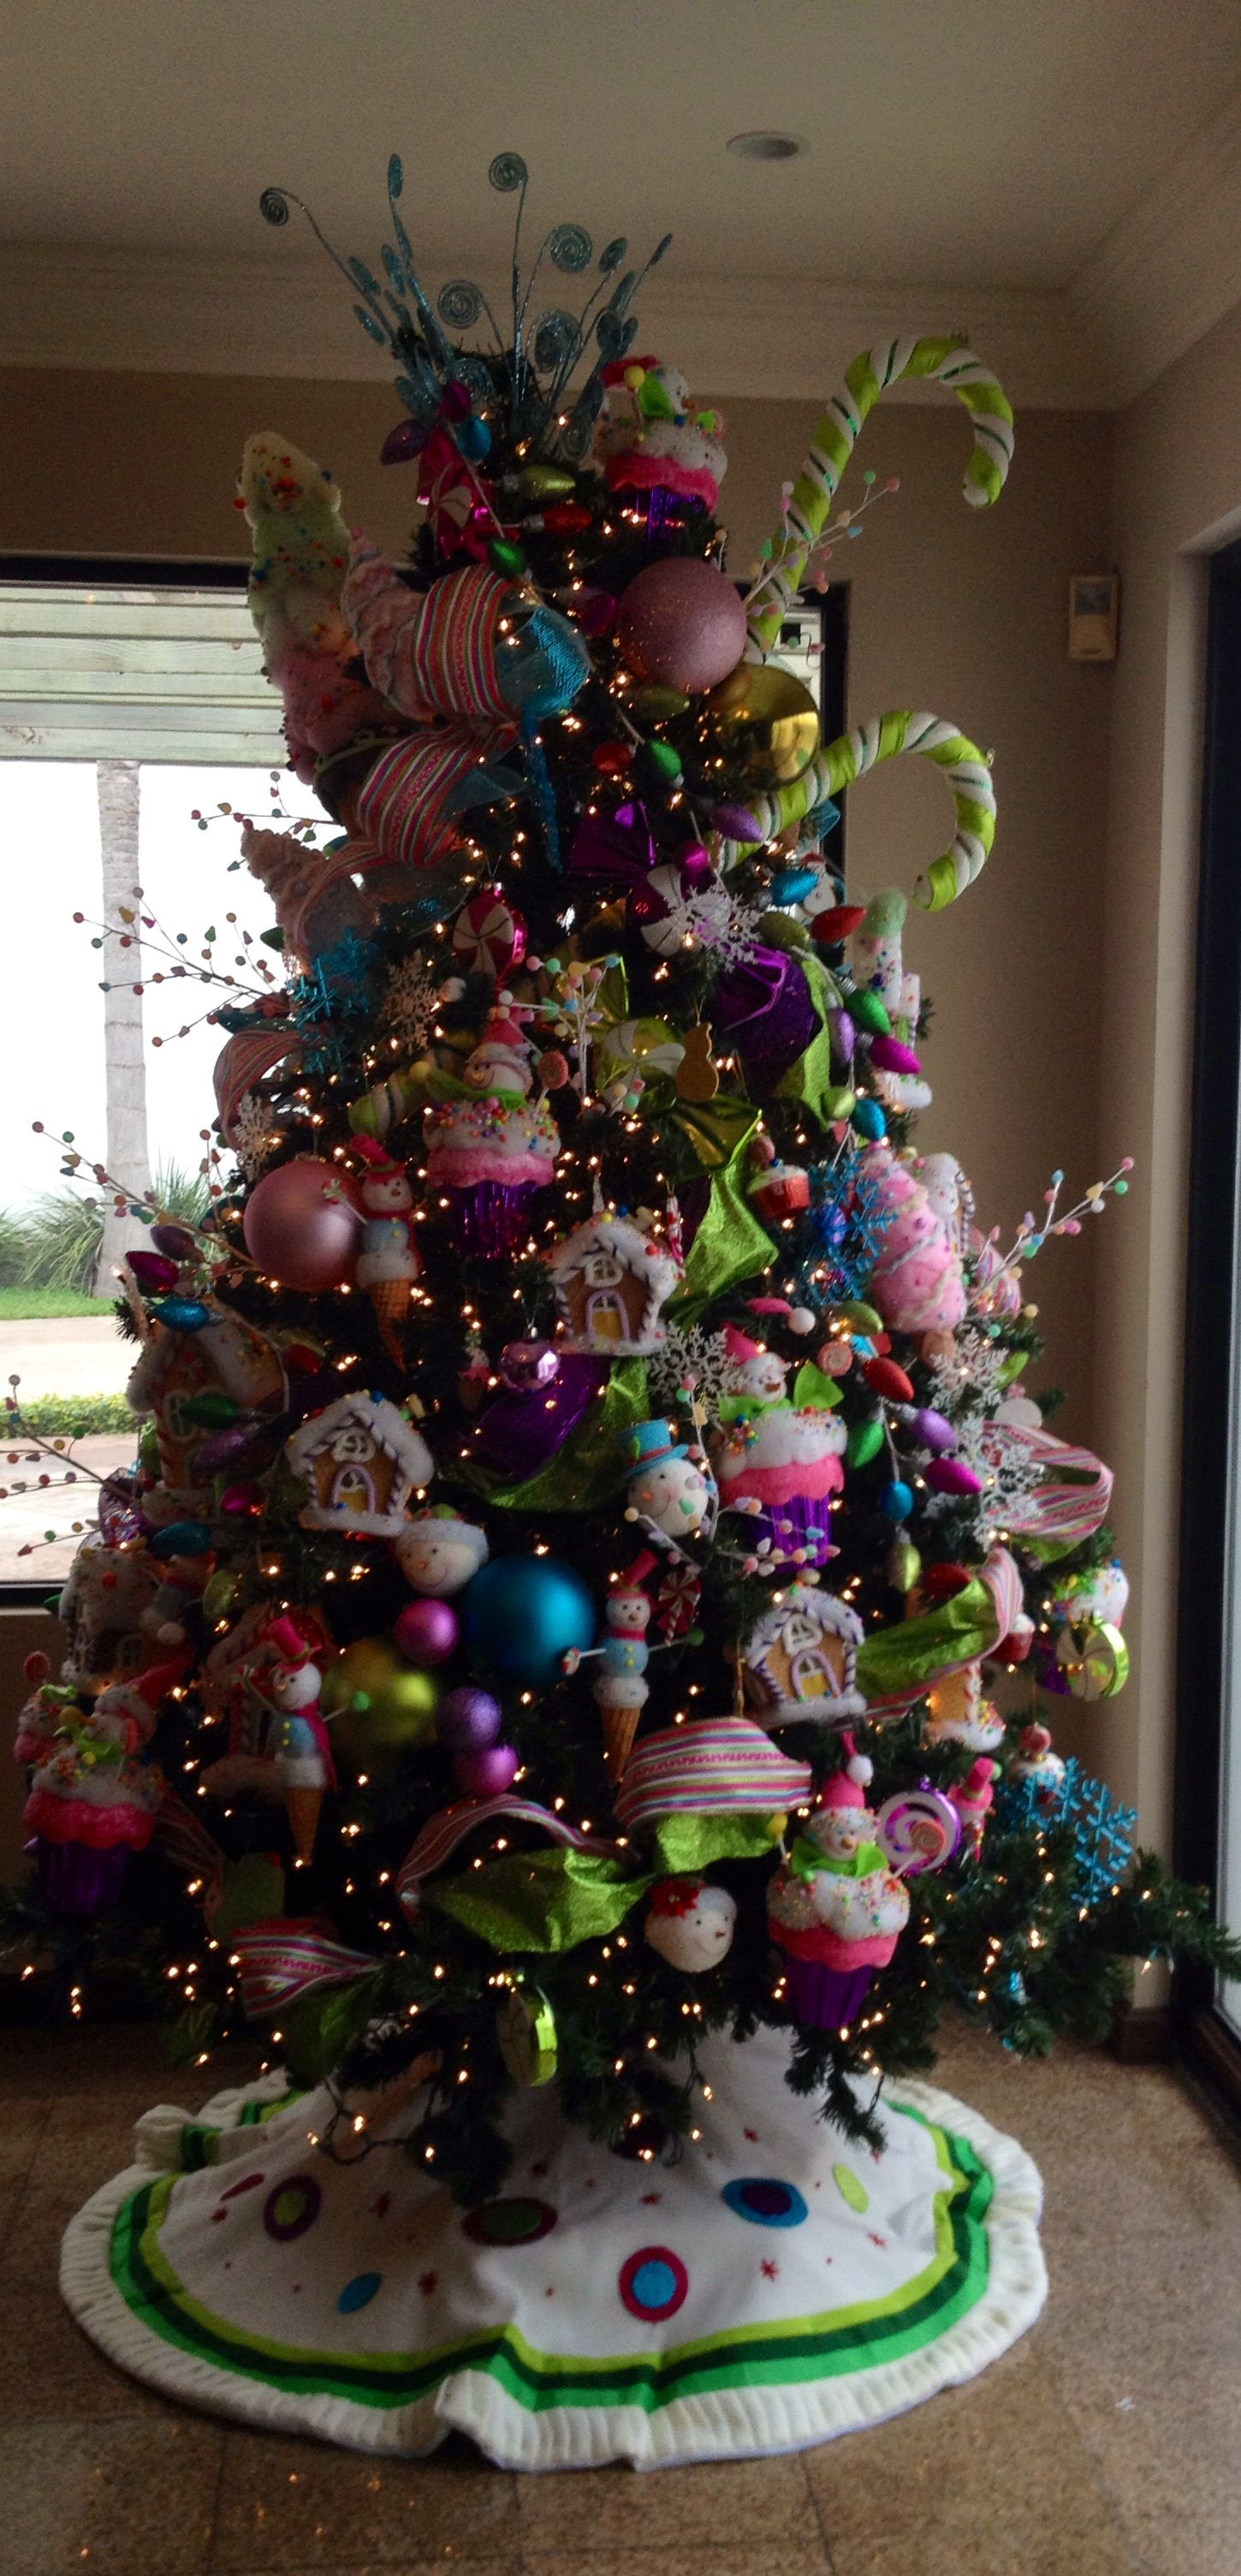 By Tere Mcd 2013 Candy Landchristmas Treesxmaschristmas